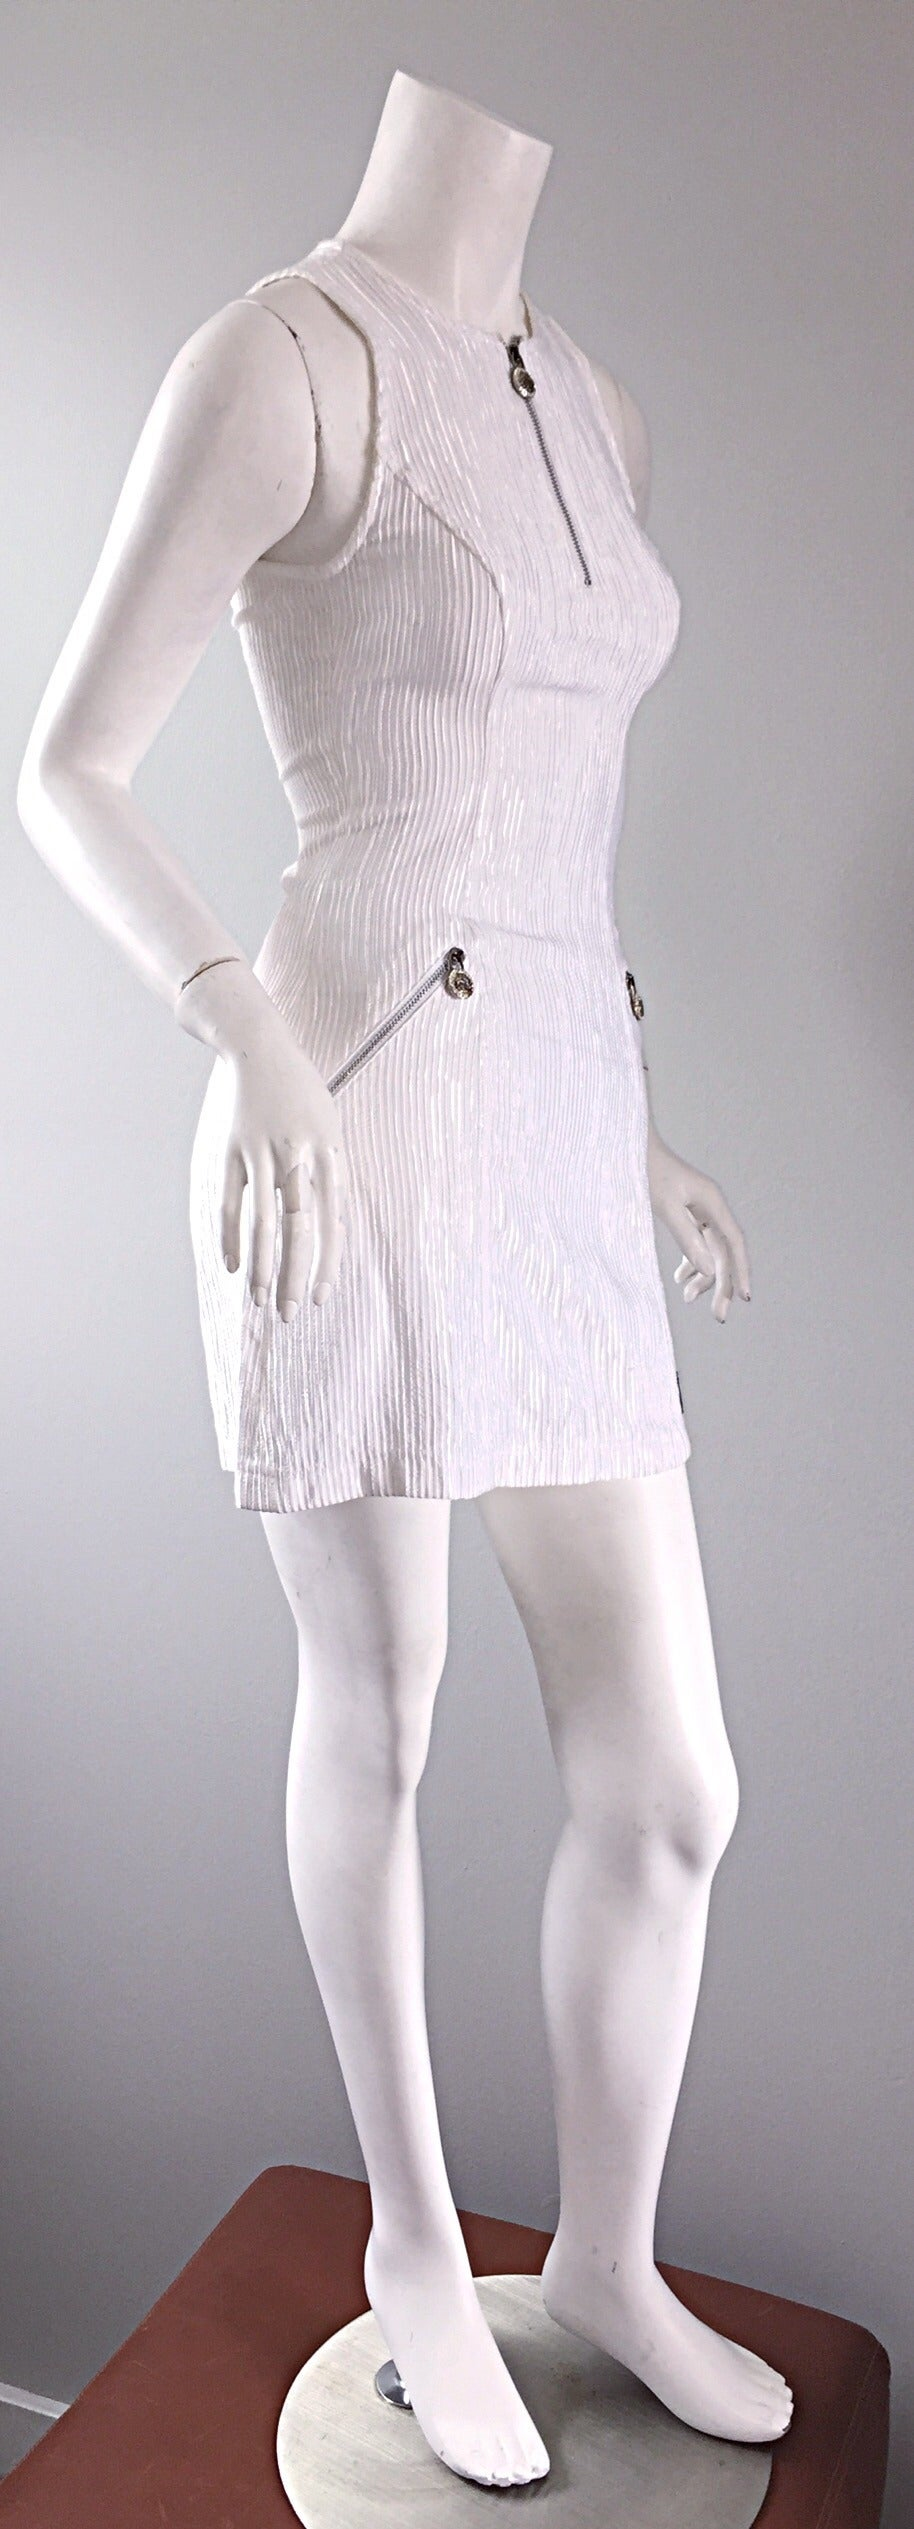 Vintage Gianni Versace White Ribbed BodyCon Scuba Dress Medusa + Rhinestones In Excellent Condition For Sale In San Francisco, CA